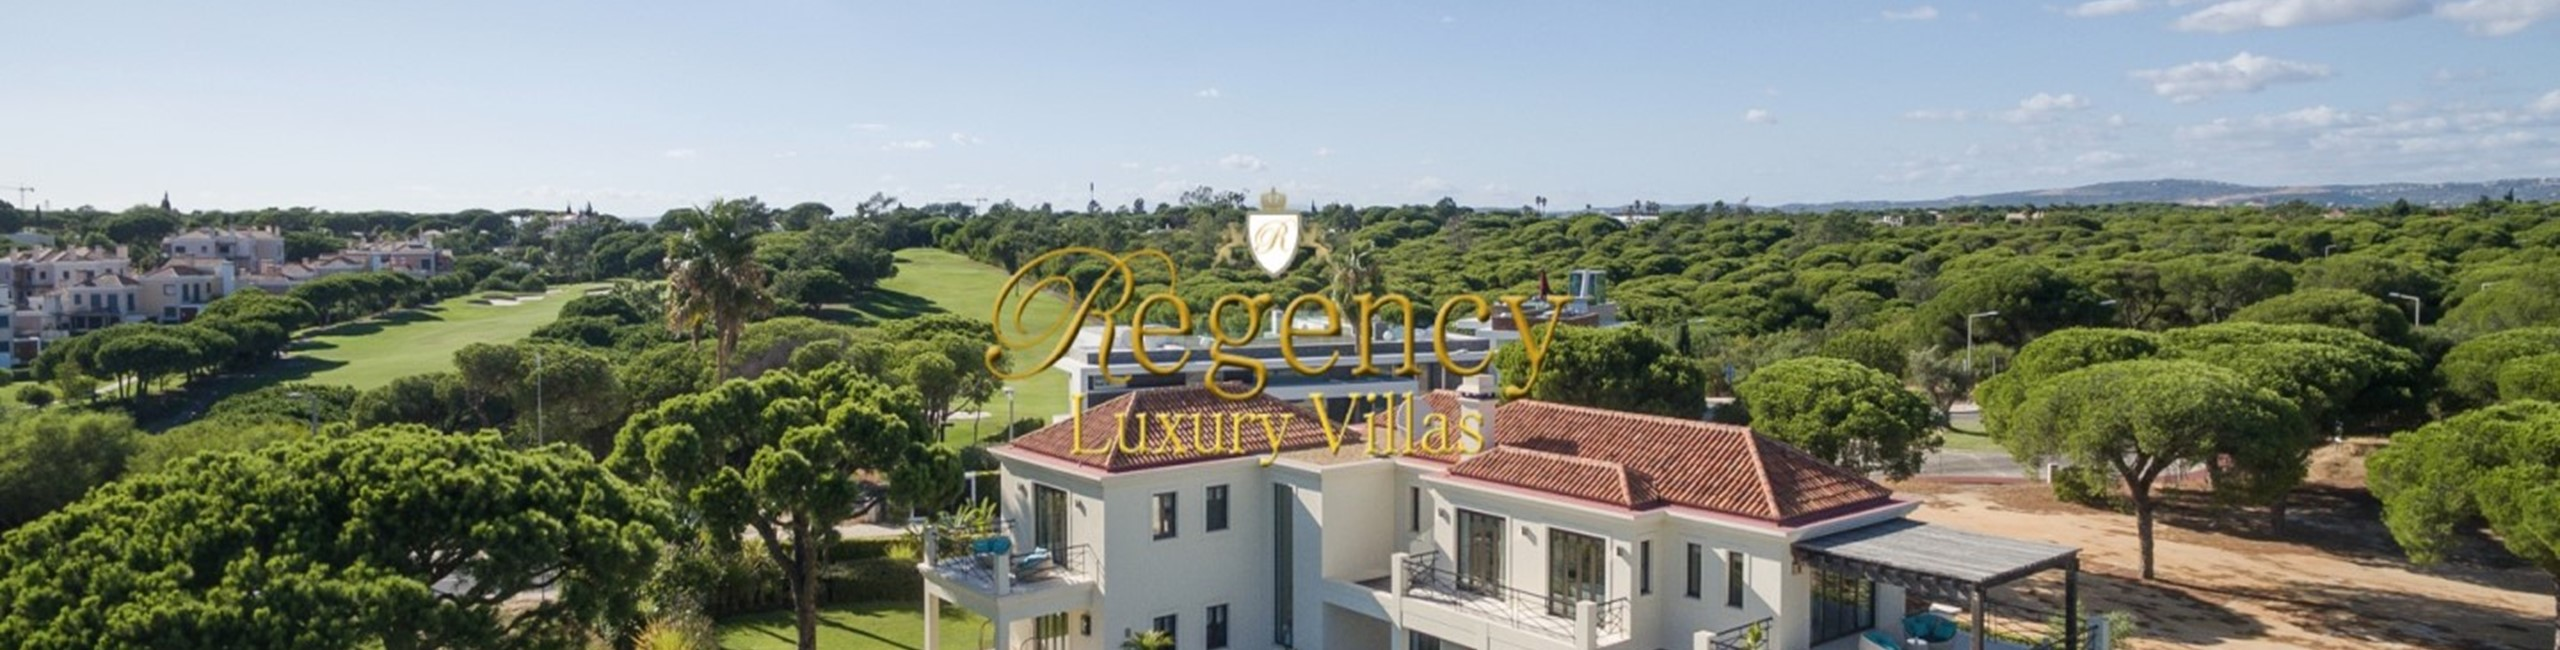 6 Bedroom Luxury Villa To Rent In Vale Do Lobo Near The Golf Course With Jacuzzi Villa Raven Regency Luxury Villas 10